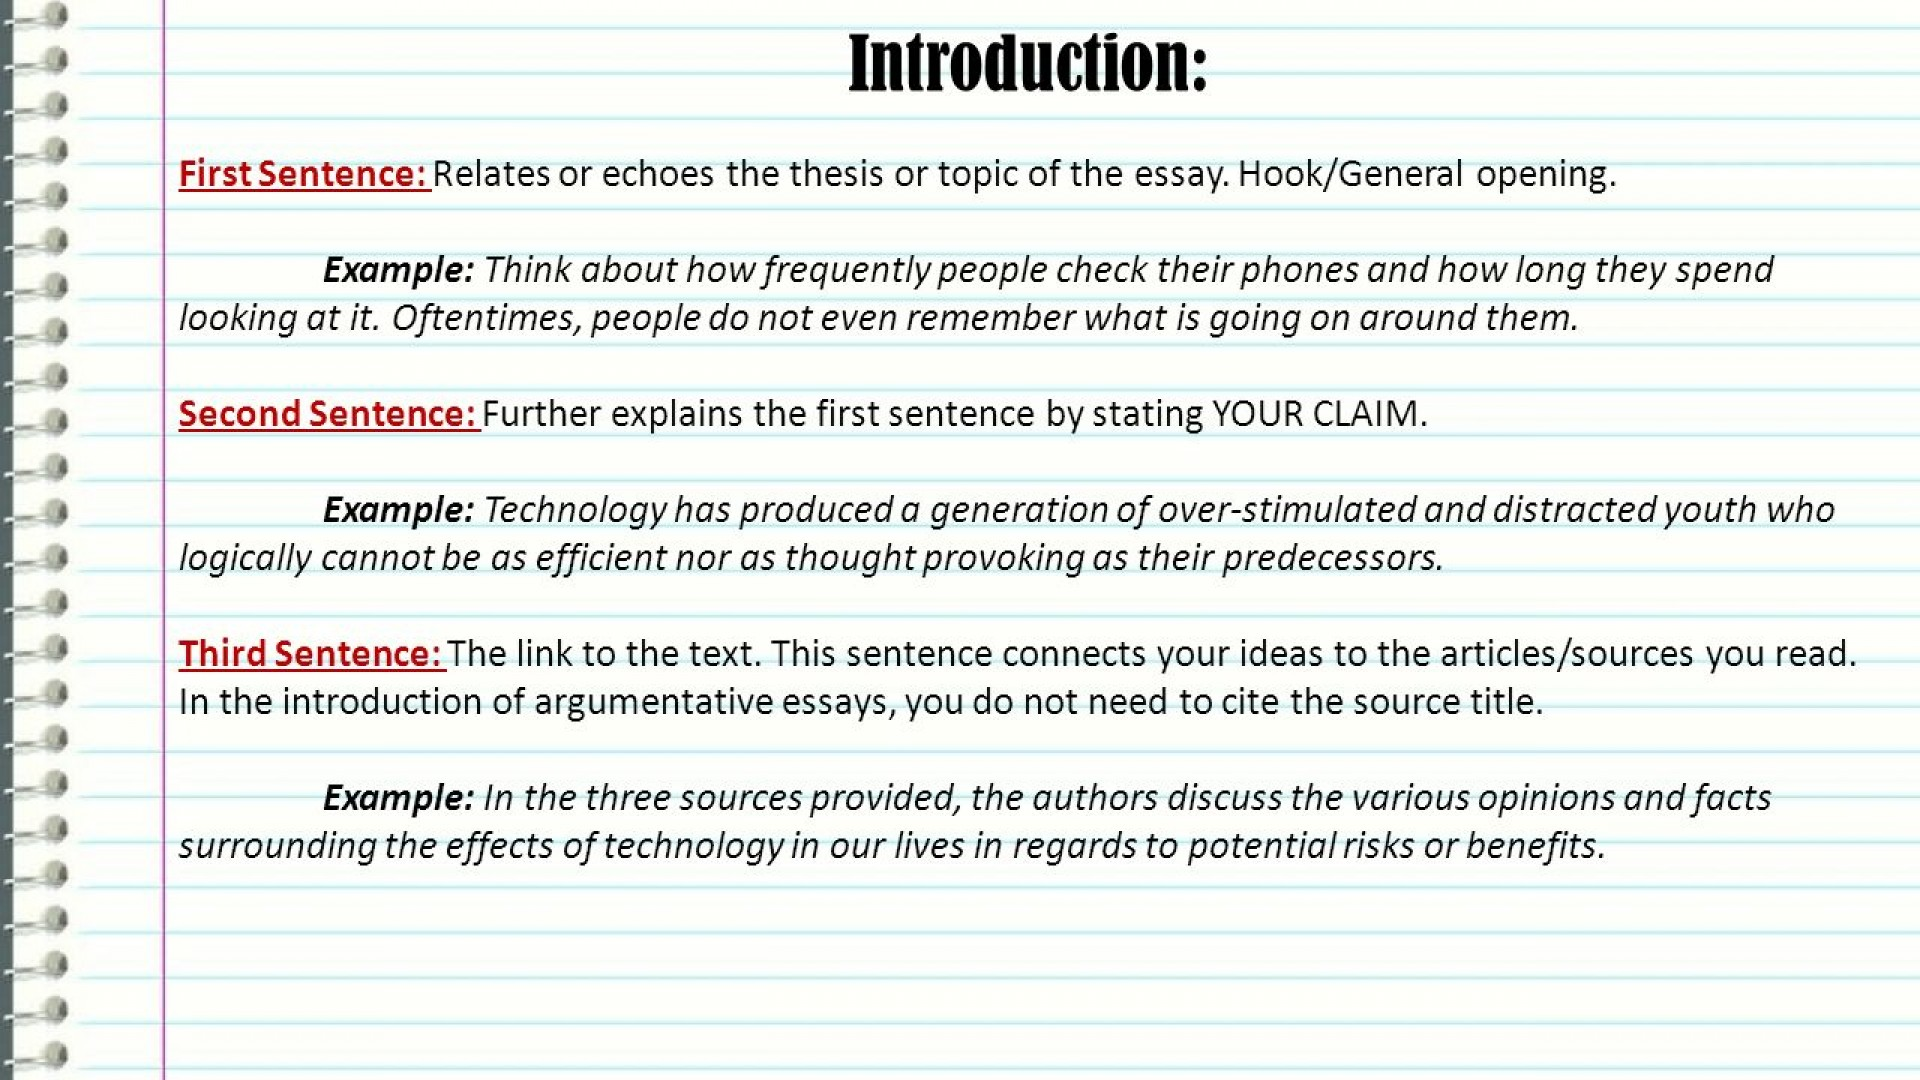 003 Good Hook Sentences For College Essays Great Opening Lines From Hooks Persuasive Exa Argumentatives List Of Best Essay Incredible Argumentative Sample 1920